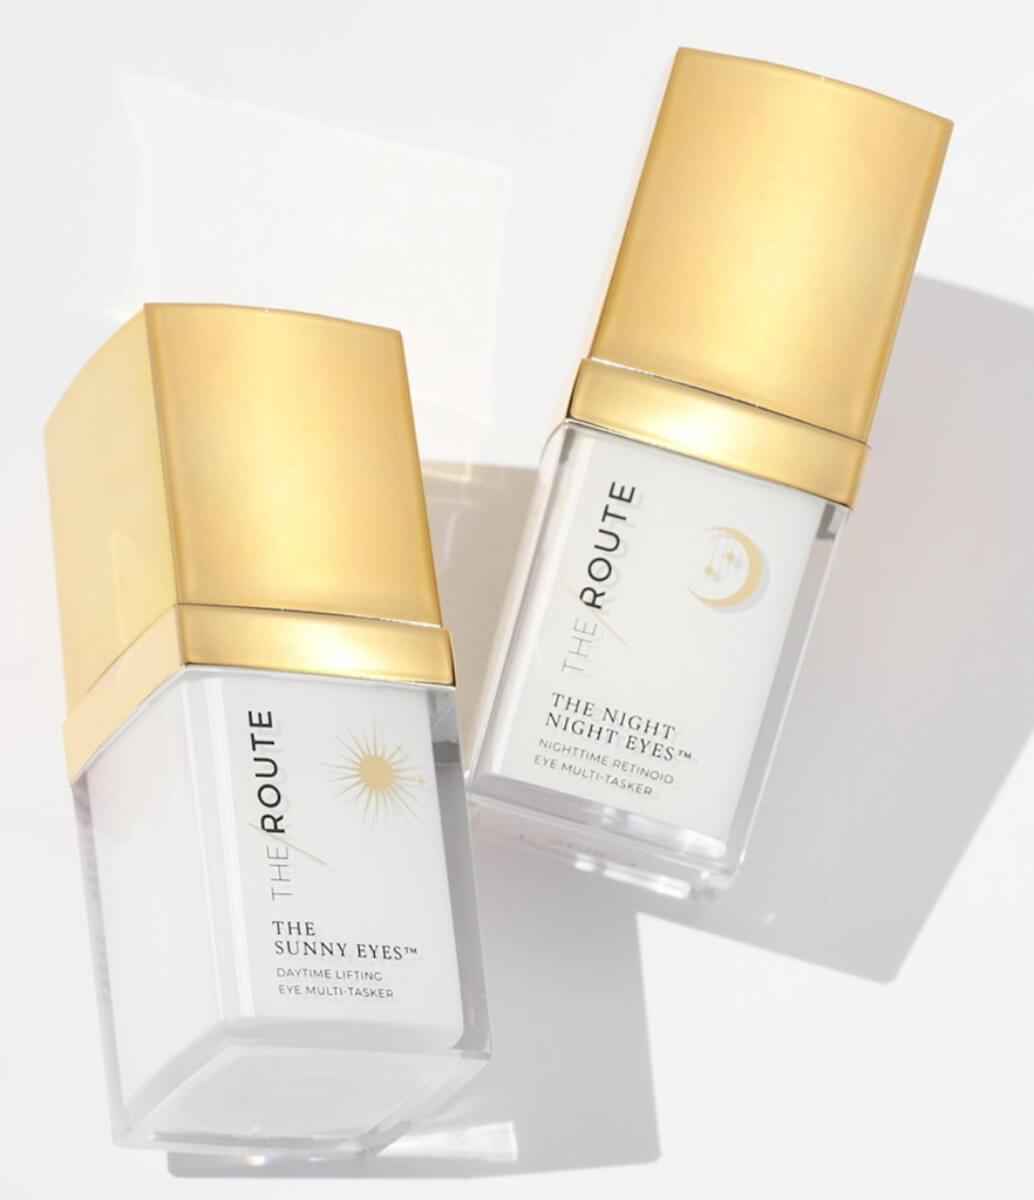 the-route-am-pm-eye-creams-060721